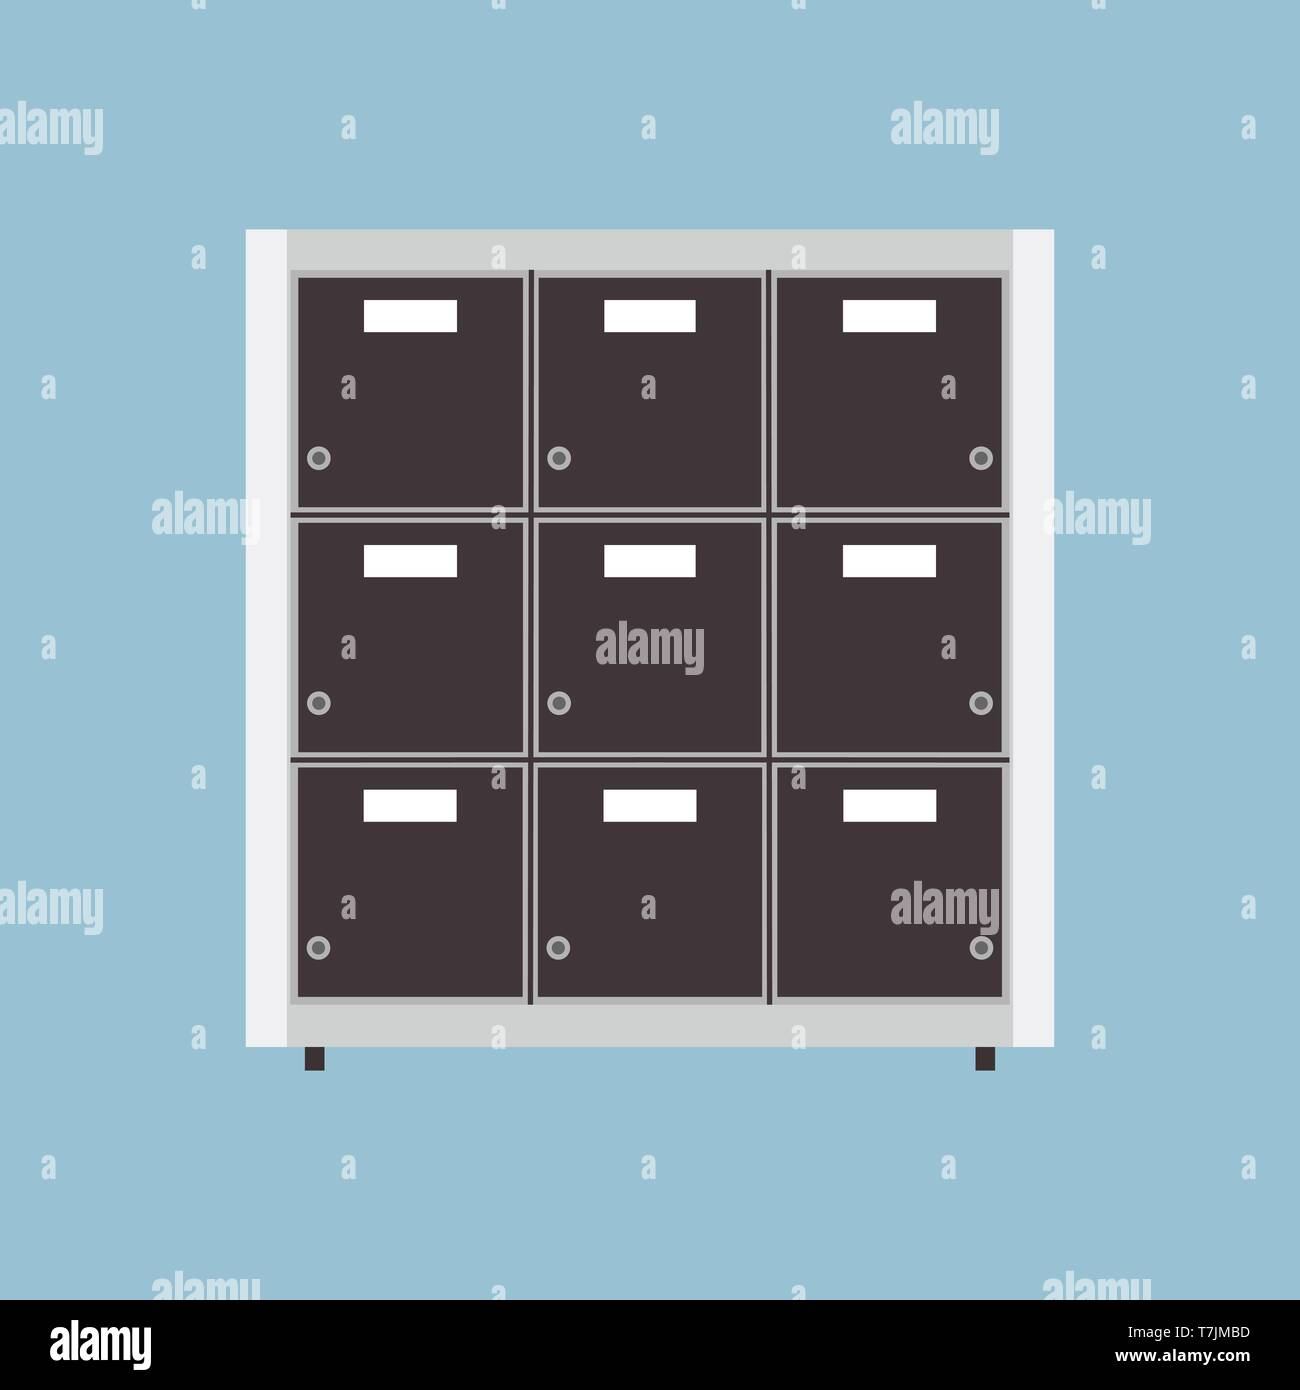 Datei Archiv Vektor Icon Business Document Data Ordner Isolierter Speicher Büro Organisieren Binder Katalog Cabinet Fach Stock Vektorgrafik Alamy